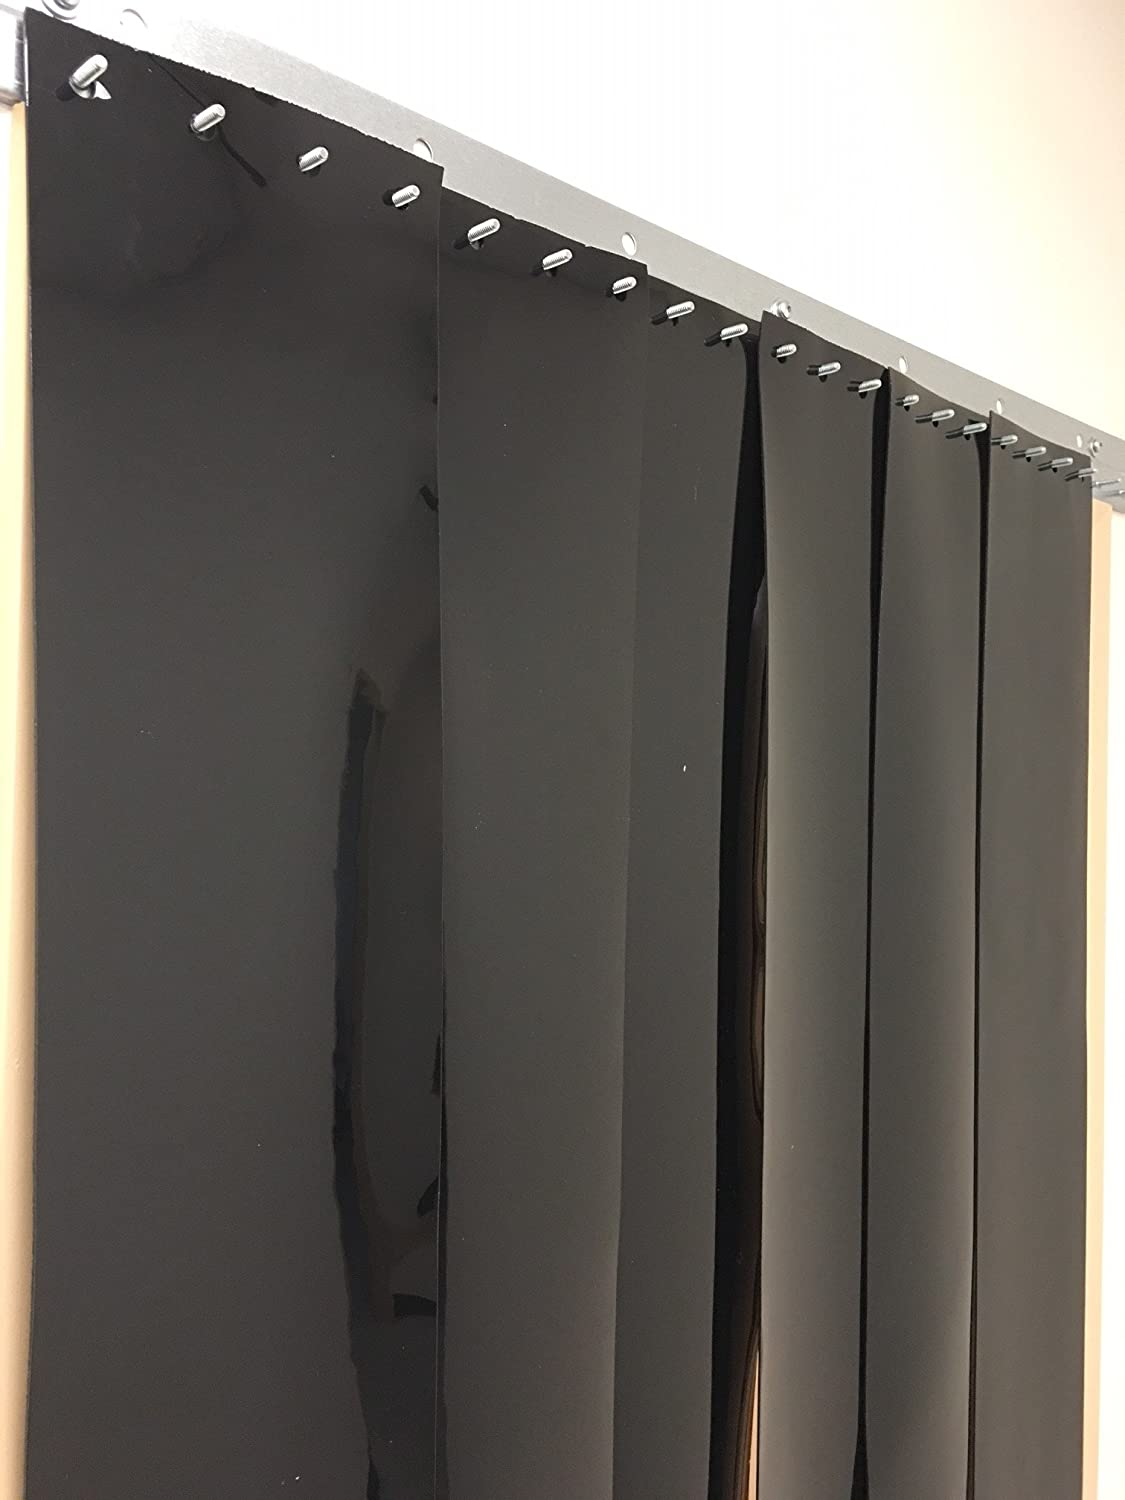 Strip-Curtains.com: Strip 35% OFF Door Curtain Shipping included - 96 8 1 X Width in. ft